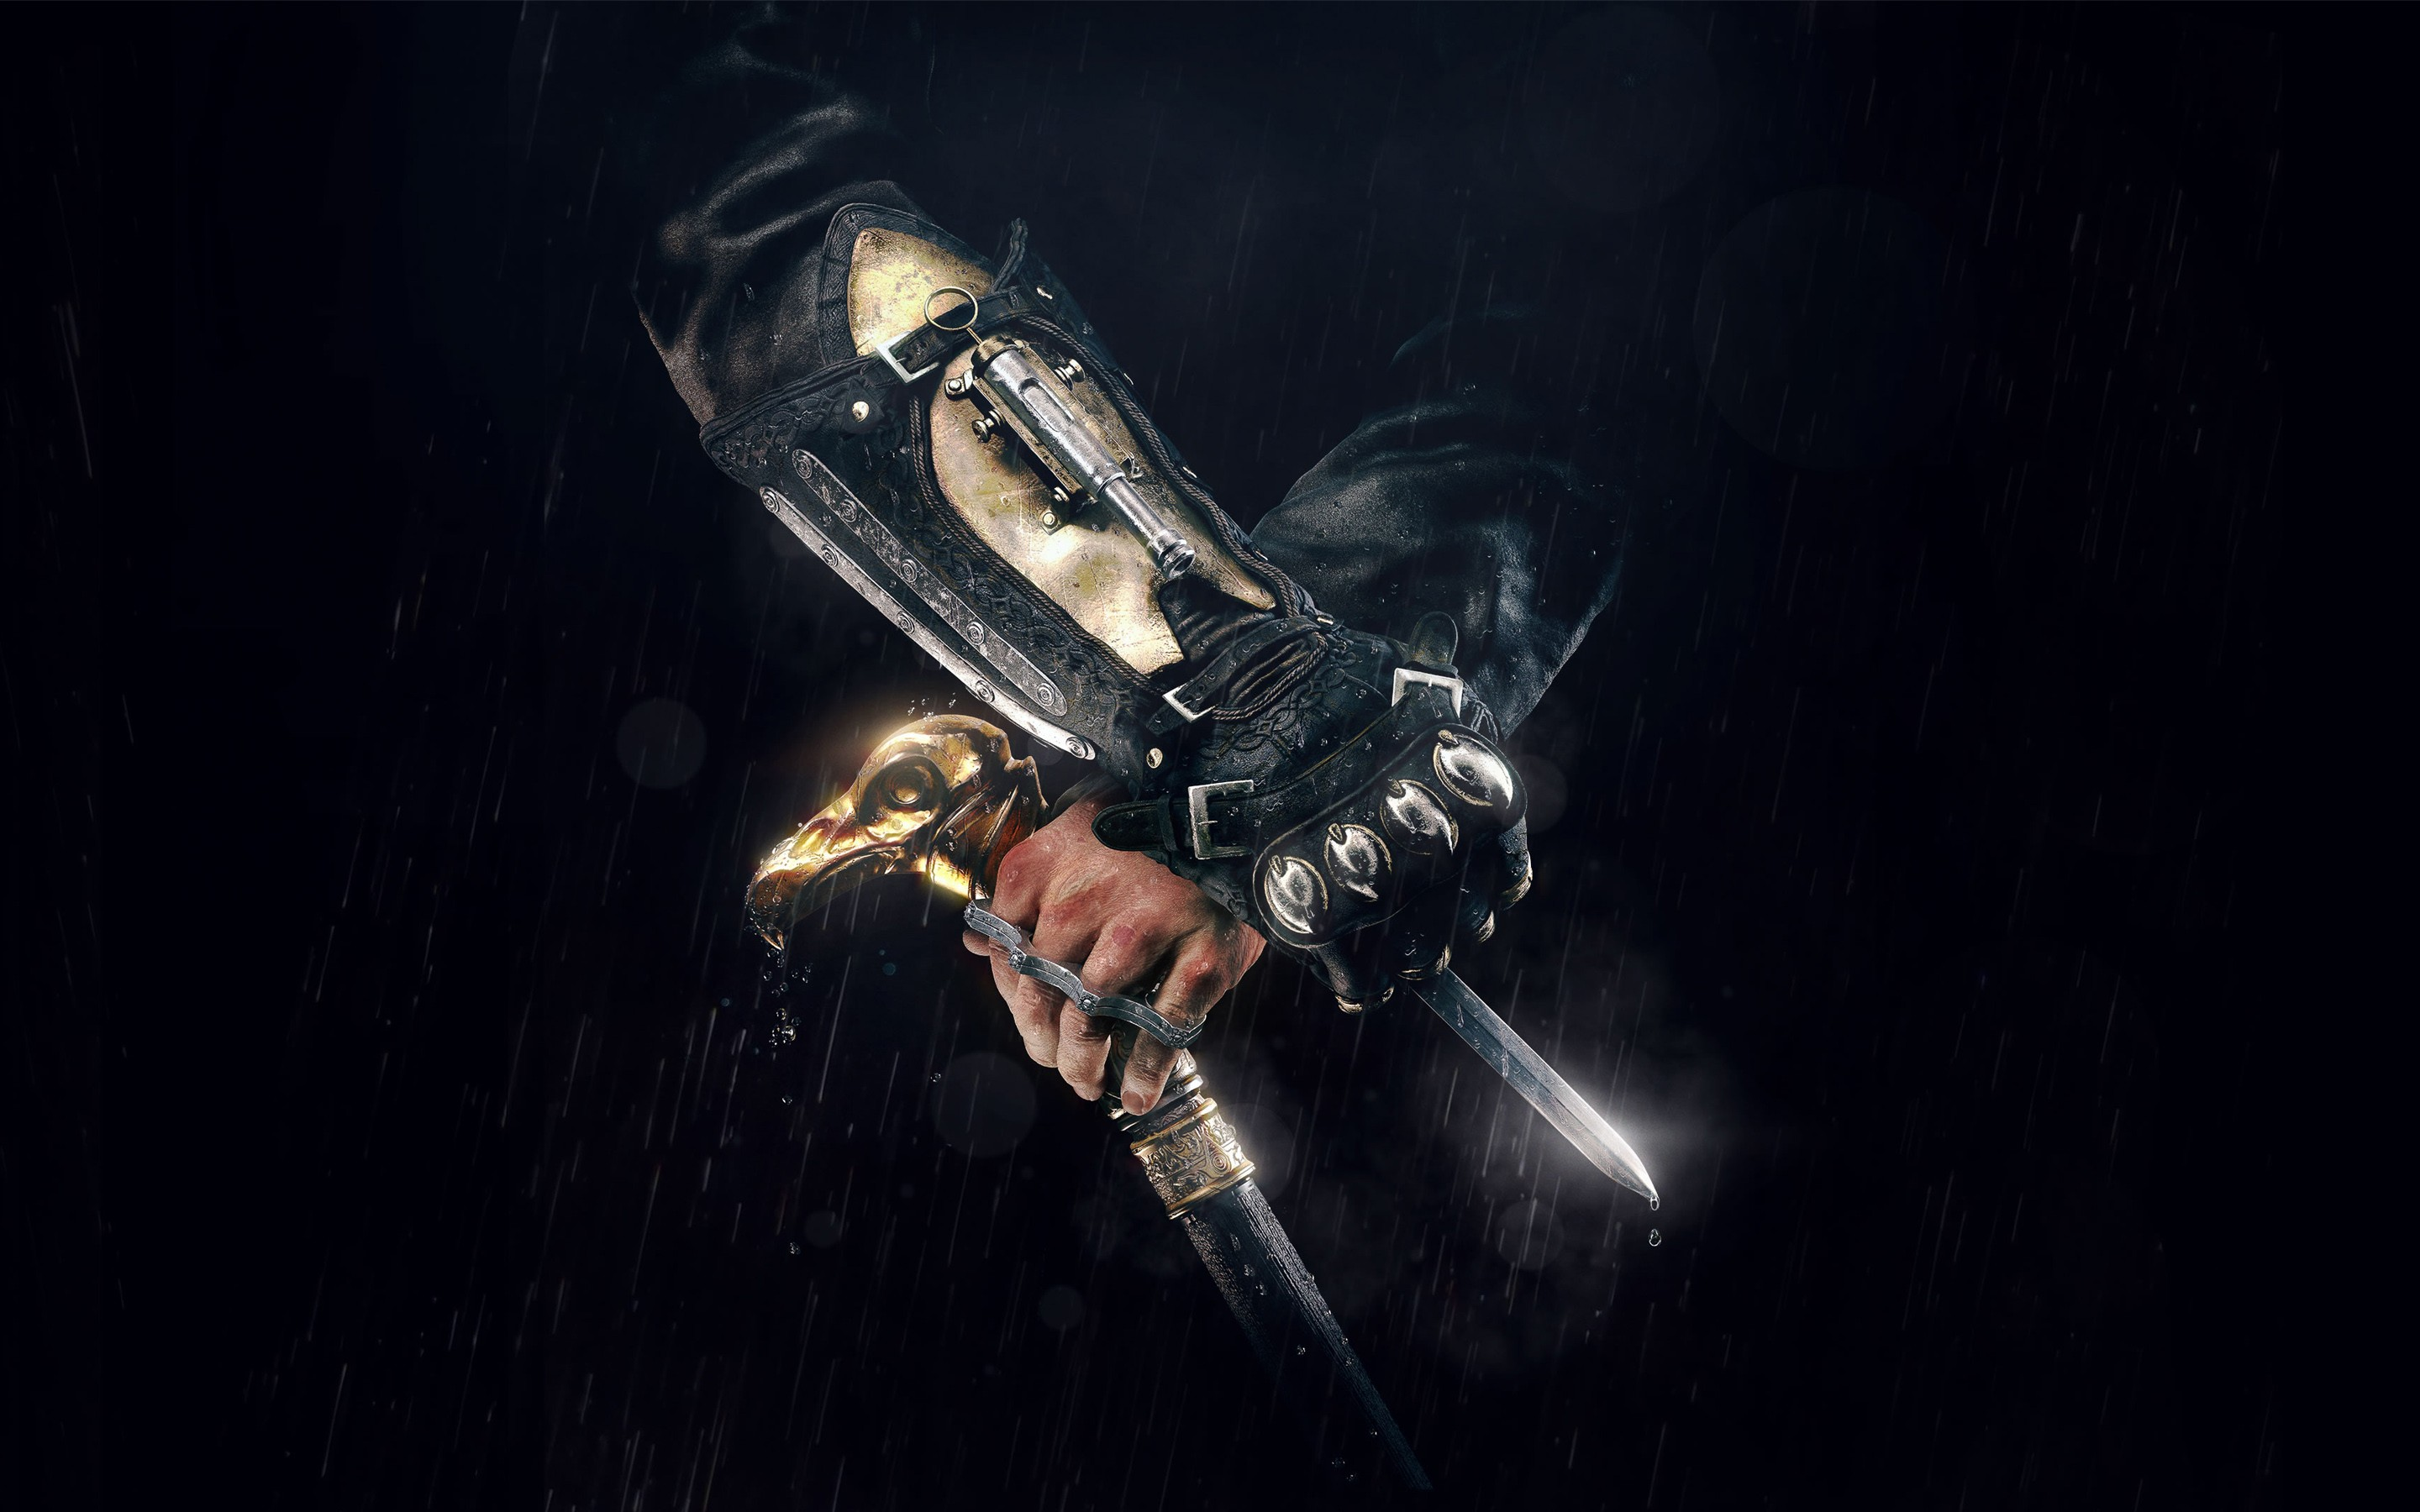 assassins creed syndicate 2015 game hd games 4k